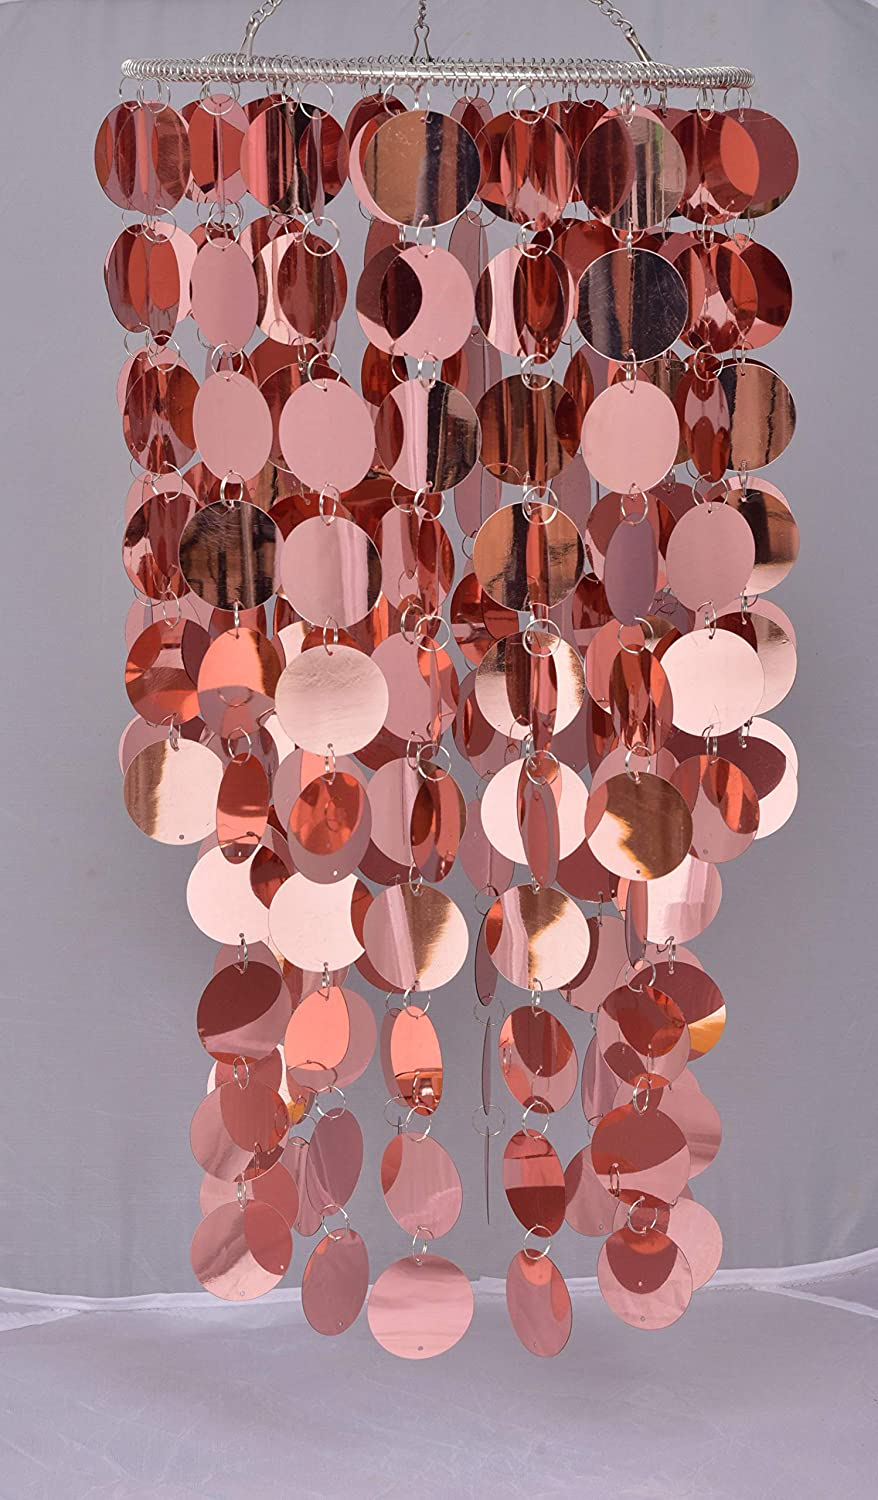 FlavorThings Bling Hanging Chandelier Great idea for Wedding Chandeliers Centerpieces Decorations and Any Event Party Decor (Rose Gold)